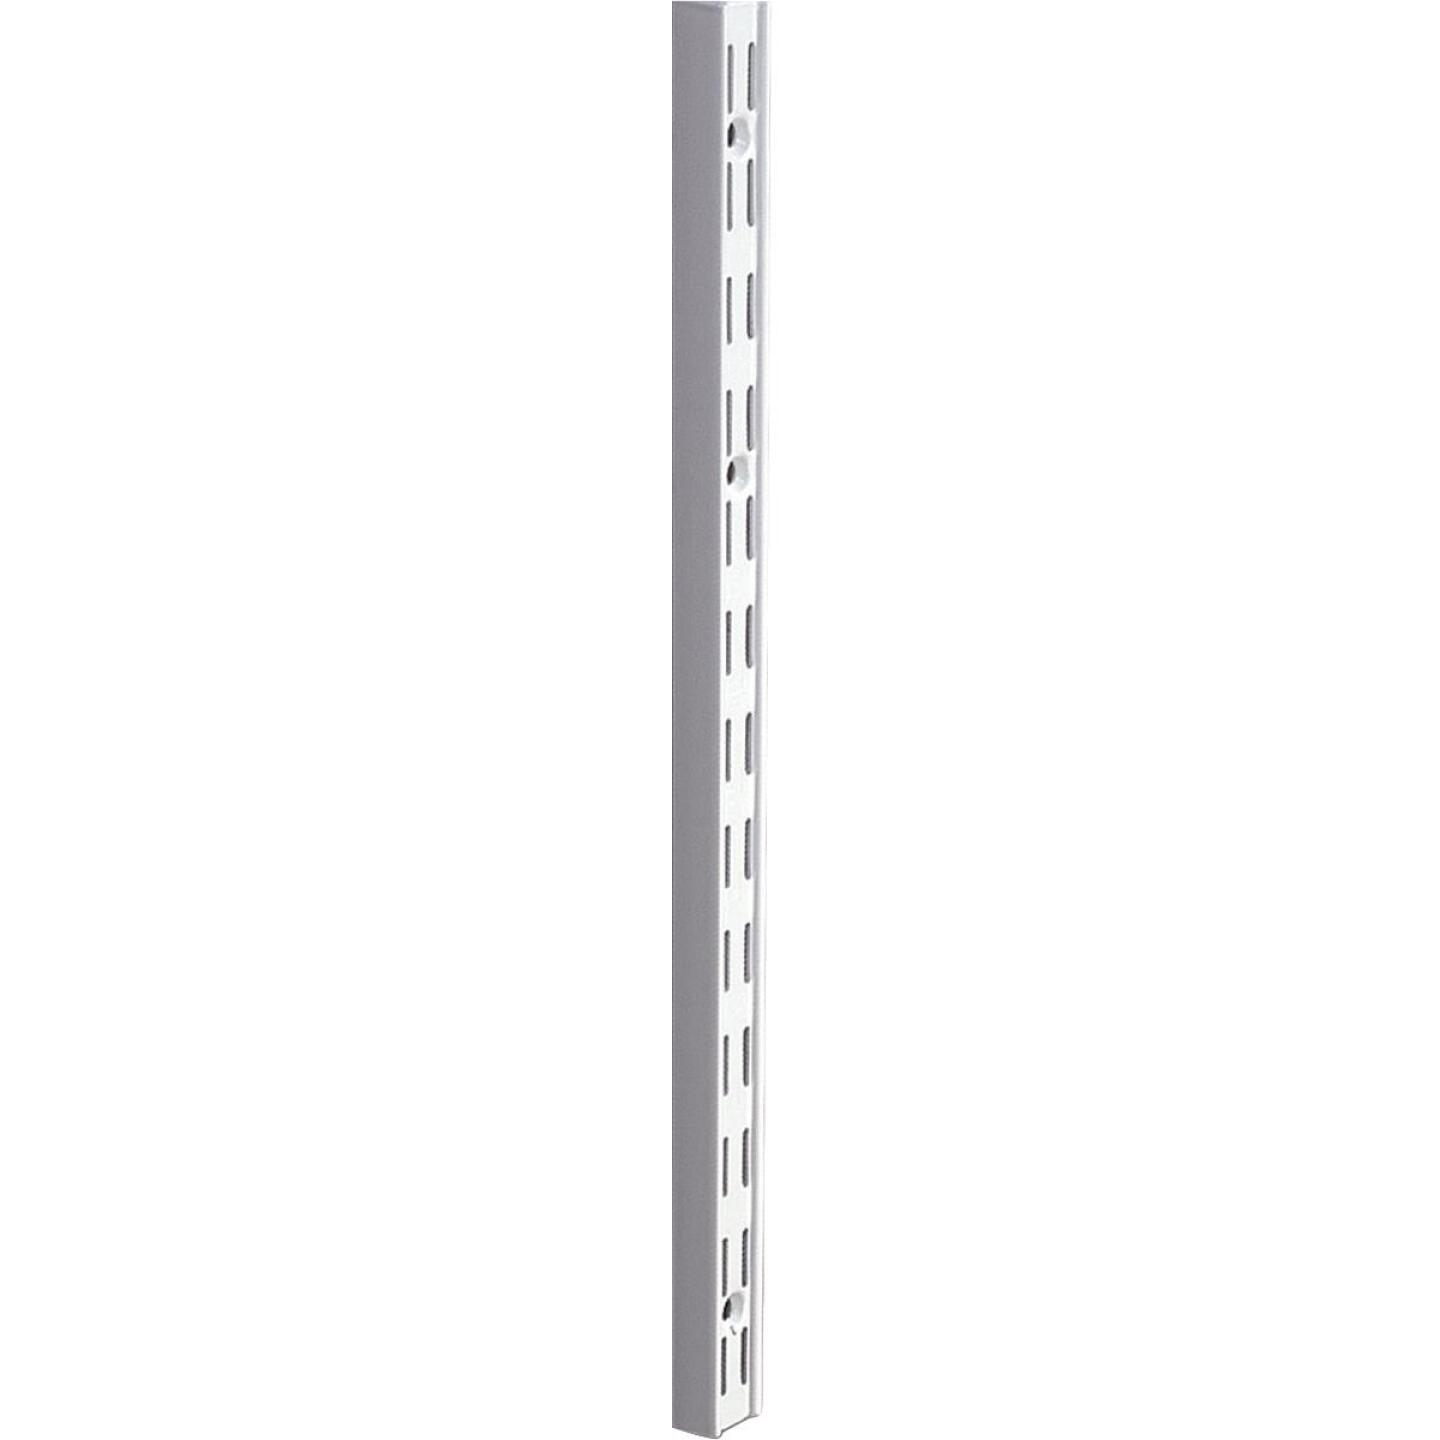 Knape & Vogt 82 Series 63 In. Titanium Steel Heavy-Duty Double-Slot Shelf Standard Image 1